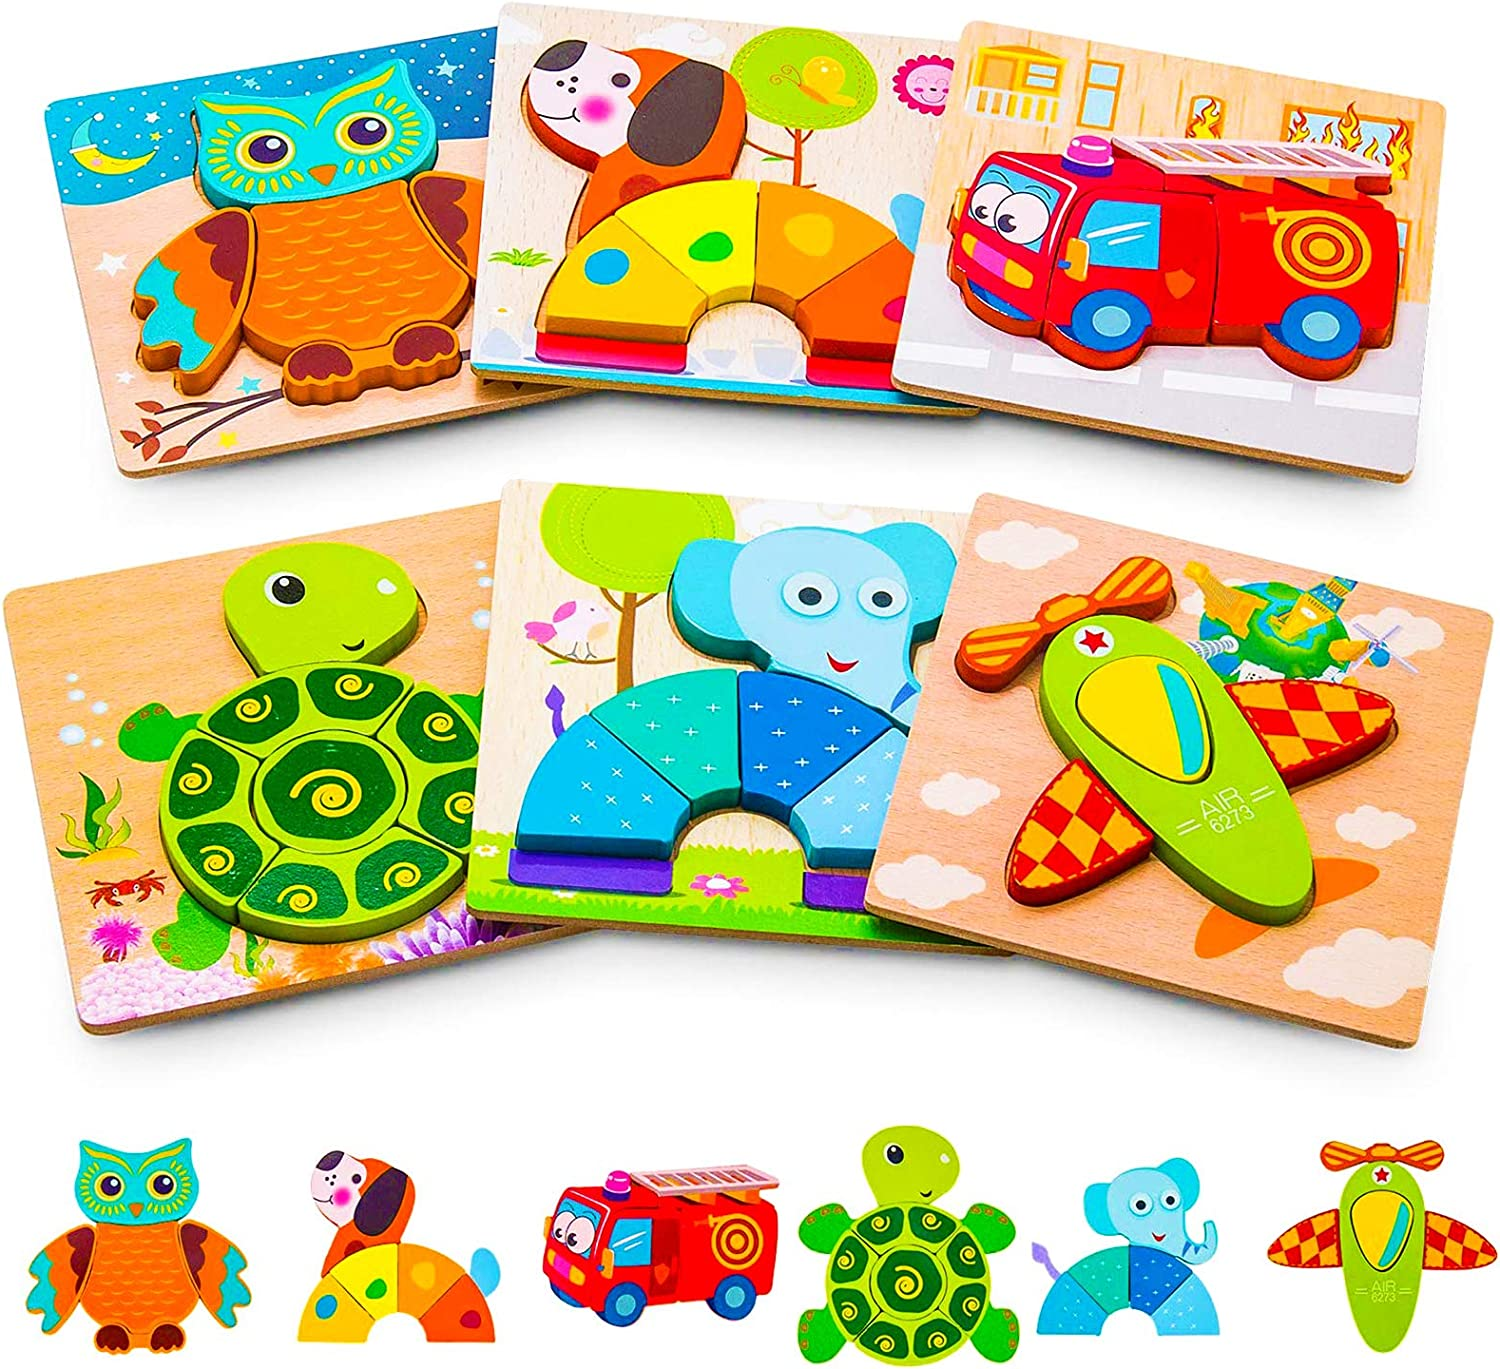 Homgix Wooden Jigsaw Puzzles Gifts Toys for 1 2 3 Year Old Boys and Girls Baby Toddler Infant Kid Learning Educational,5 Packs Animal Vehicle Montessori Stem Travel Toys with Drawstring Storage Bag